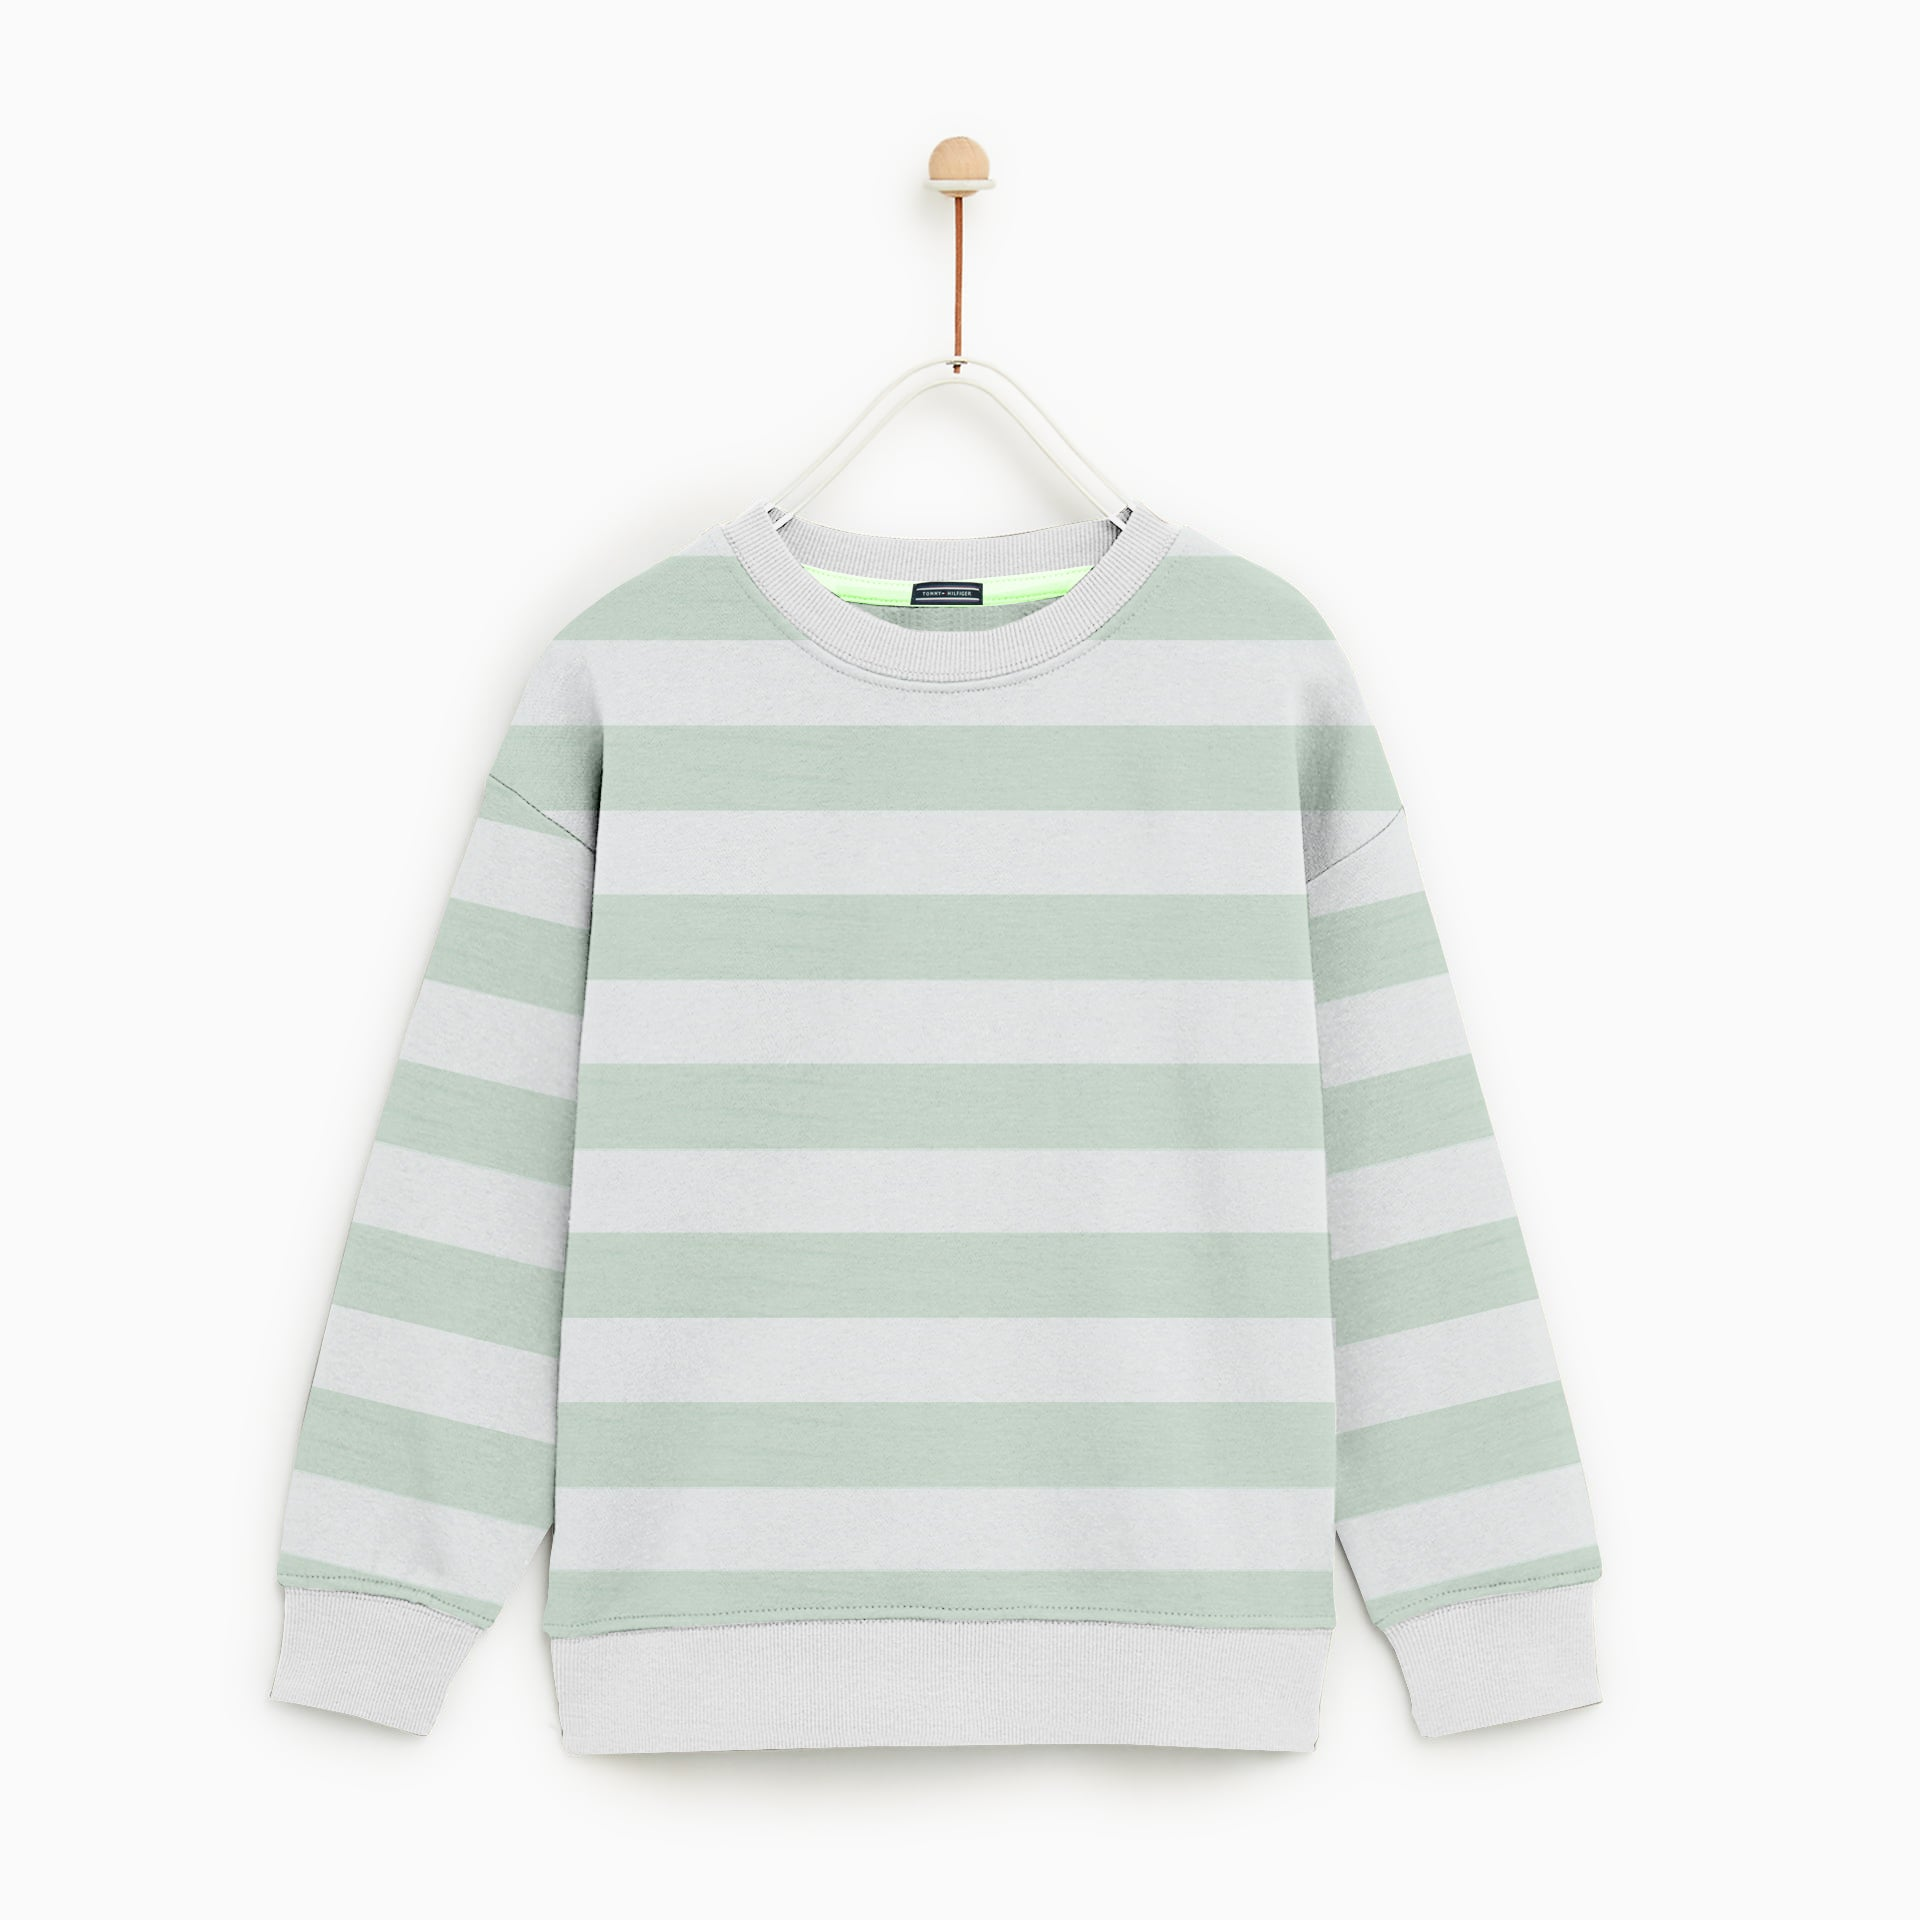 Tommy Hilfiger Crew Neck Single Jersey Sweatshirt For Kids-Light Green Striper-NA7745